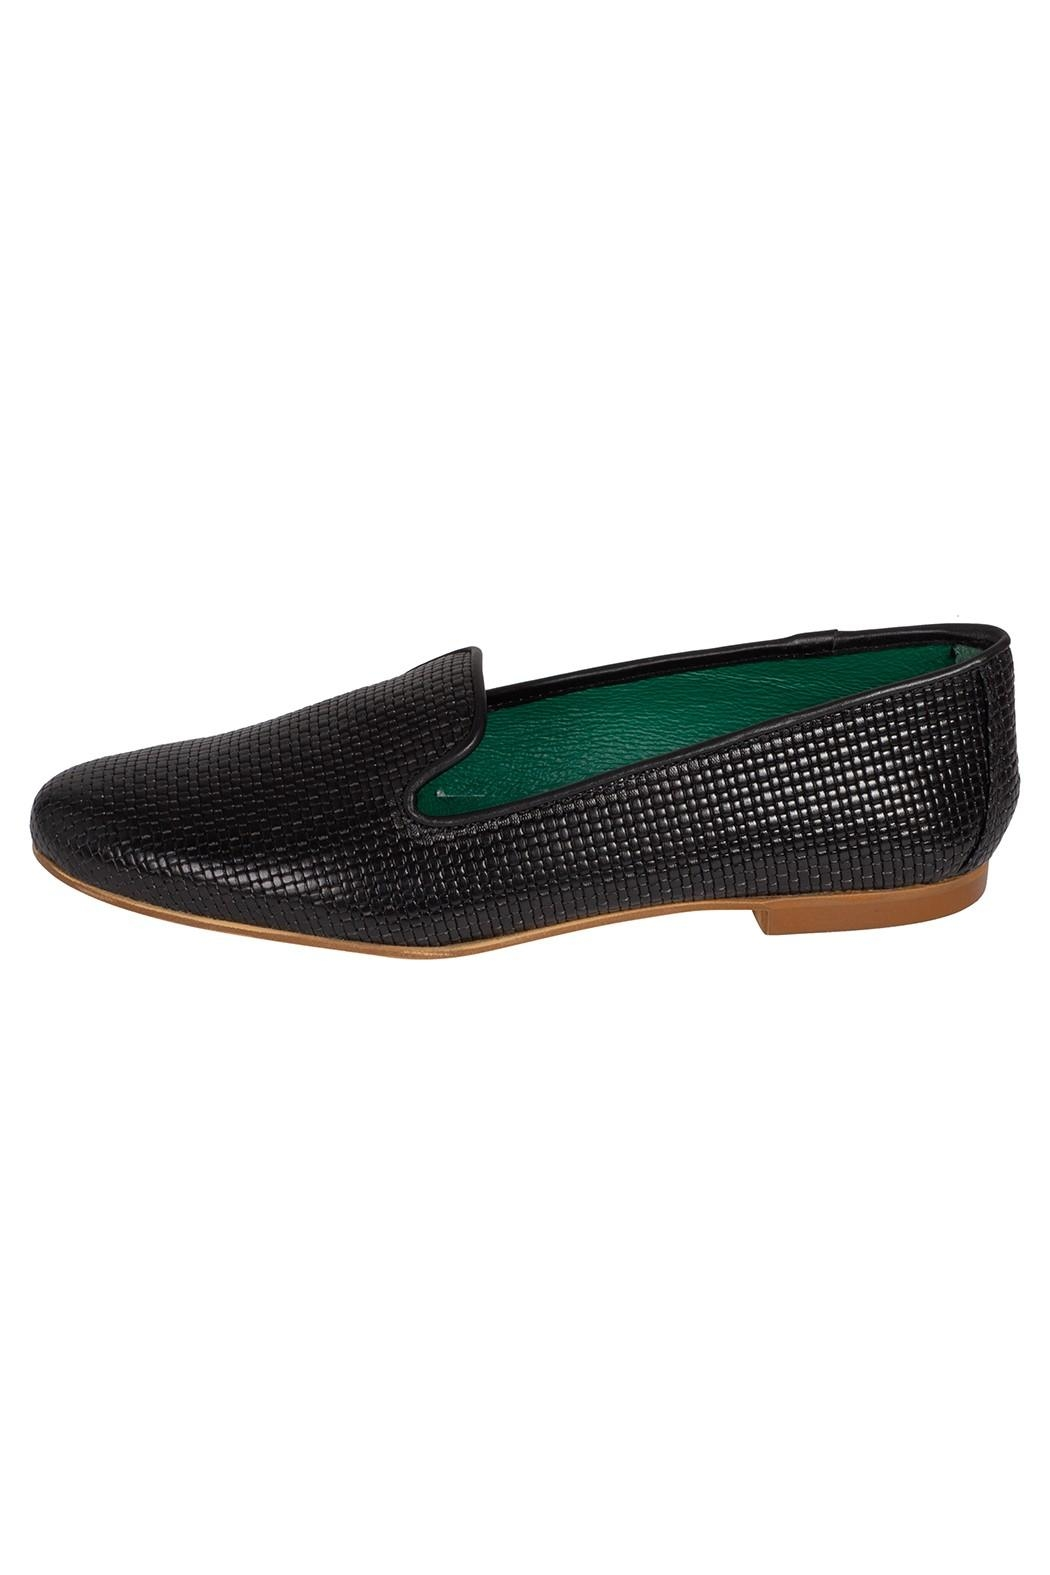 Pascucci Black Leather Smoking-Slipper - Front Cropped Image